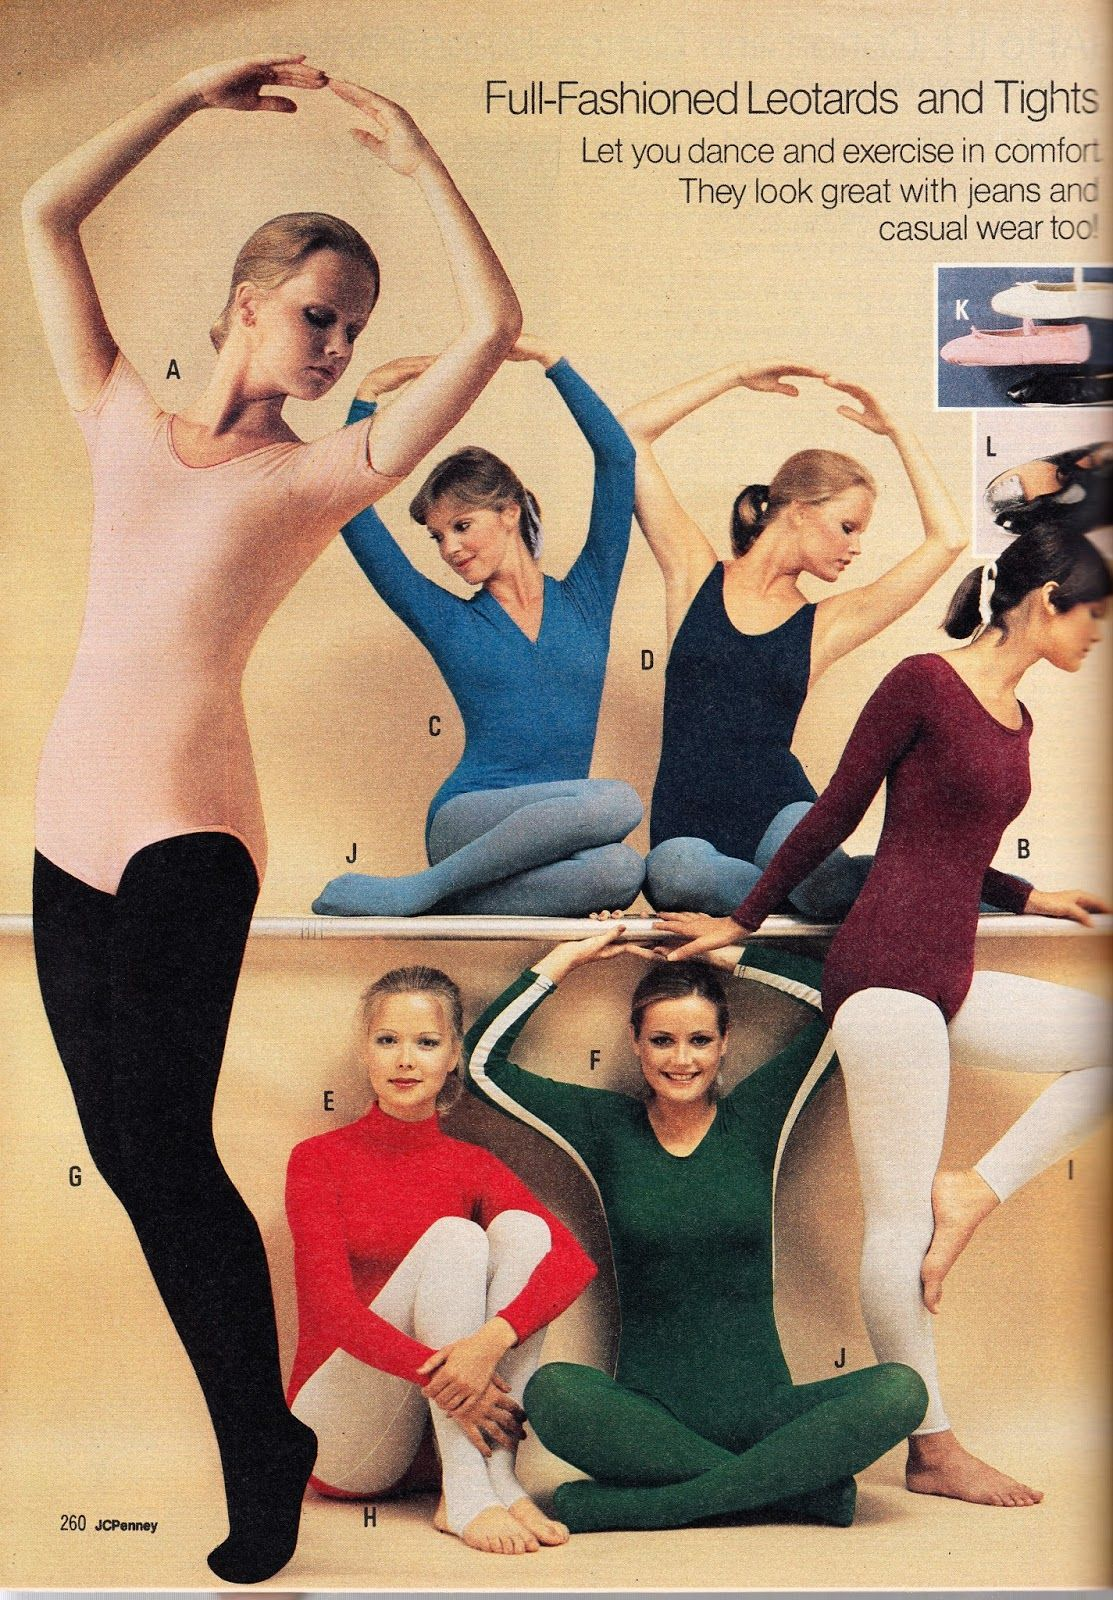 a9954c4d81372 Wool Tights, Colored Tights, Retro Look, Lycra Spandex, You Should Be  Dancing